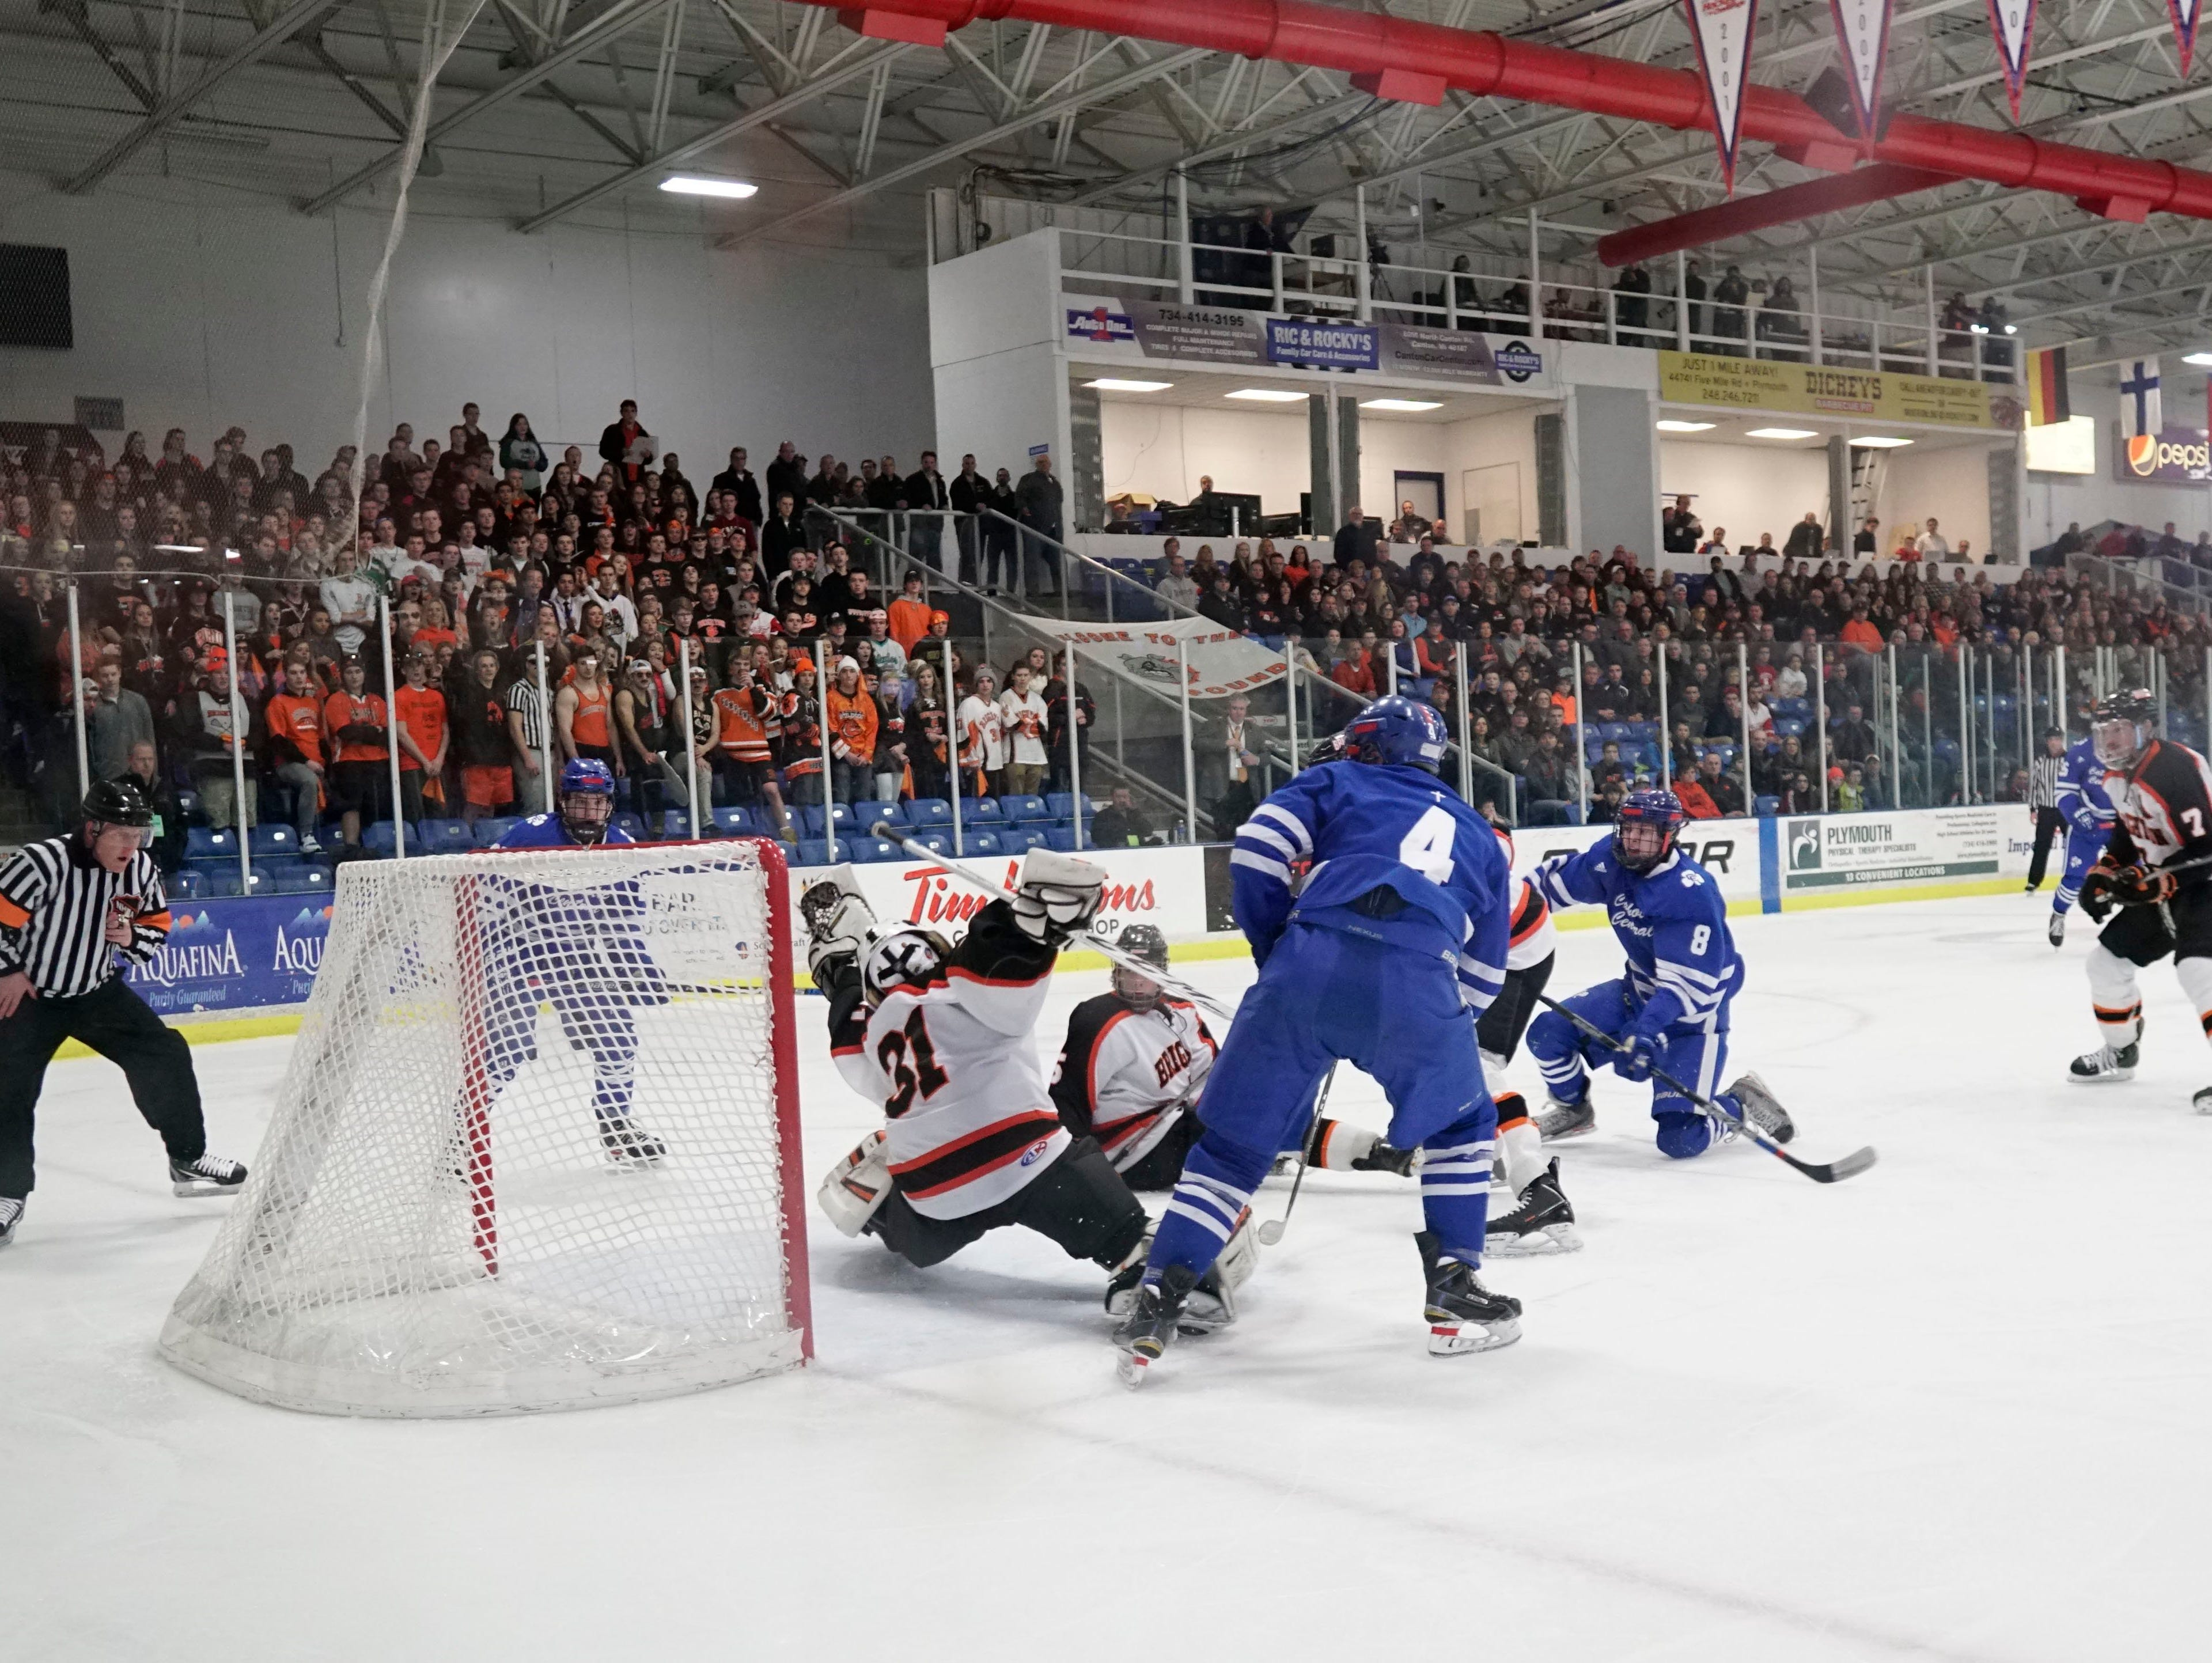 Brighton goalie Logan Neaton makes the save during Catholic Central's 3-0 win over Brighton in the 2016 Division 1 hockey final Saturday at the USA Hockey Arena in Plymouth.